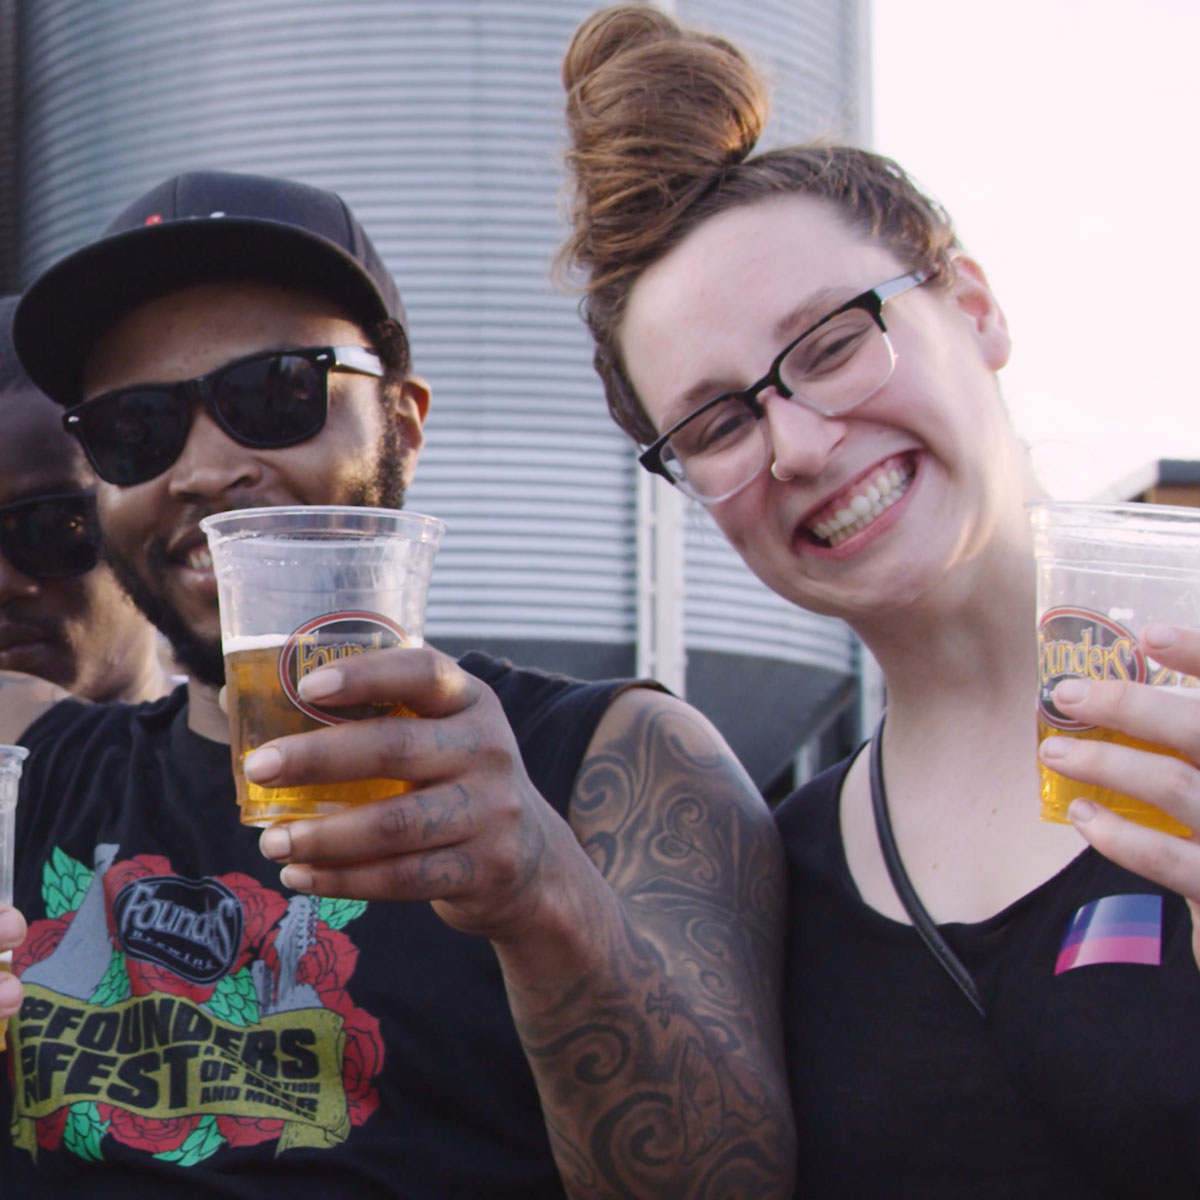 Man and woman drinking beer together